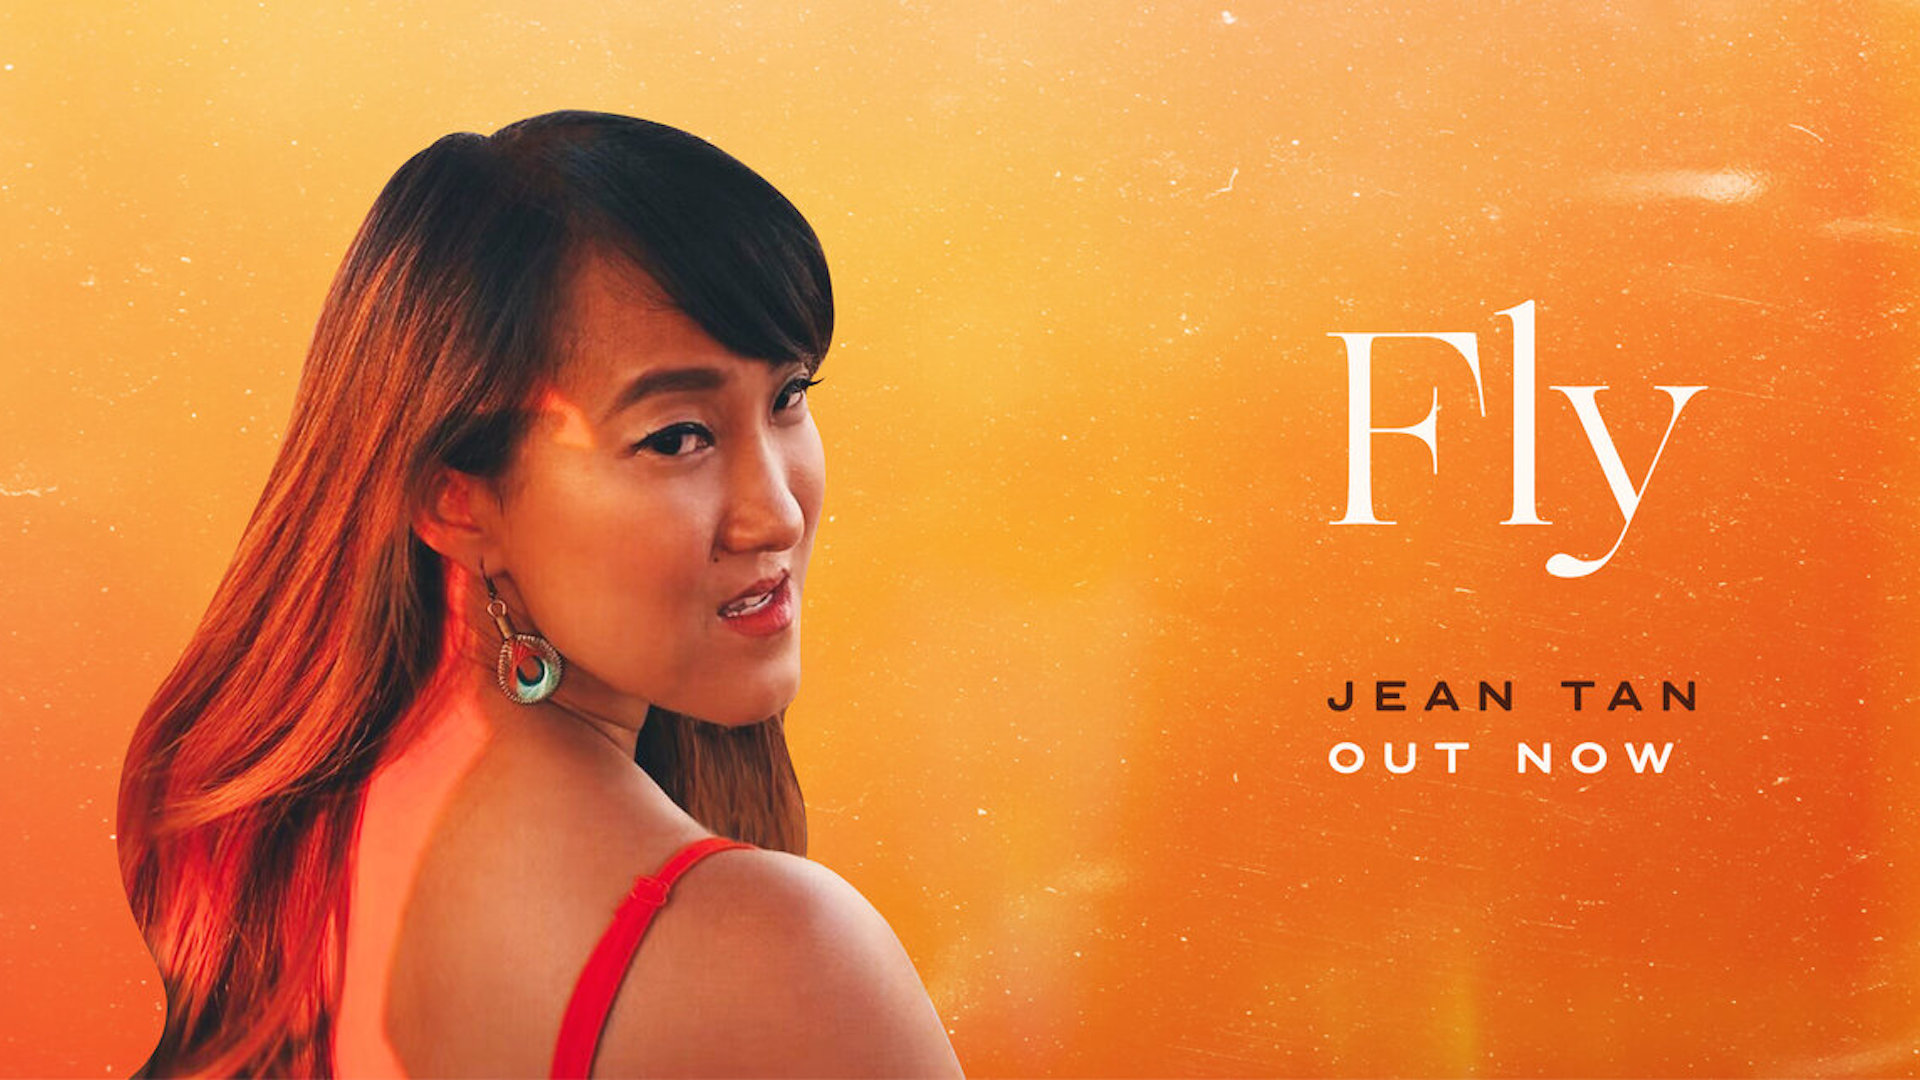 Jean Tan New Single Fly and Lyric Video